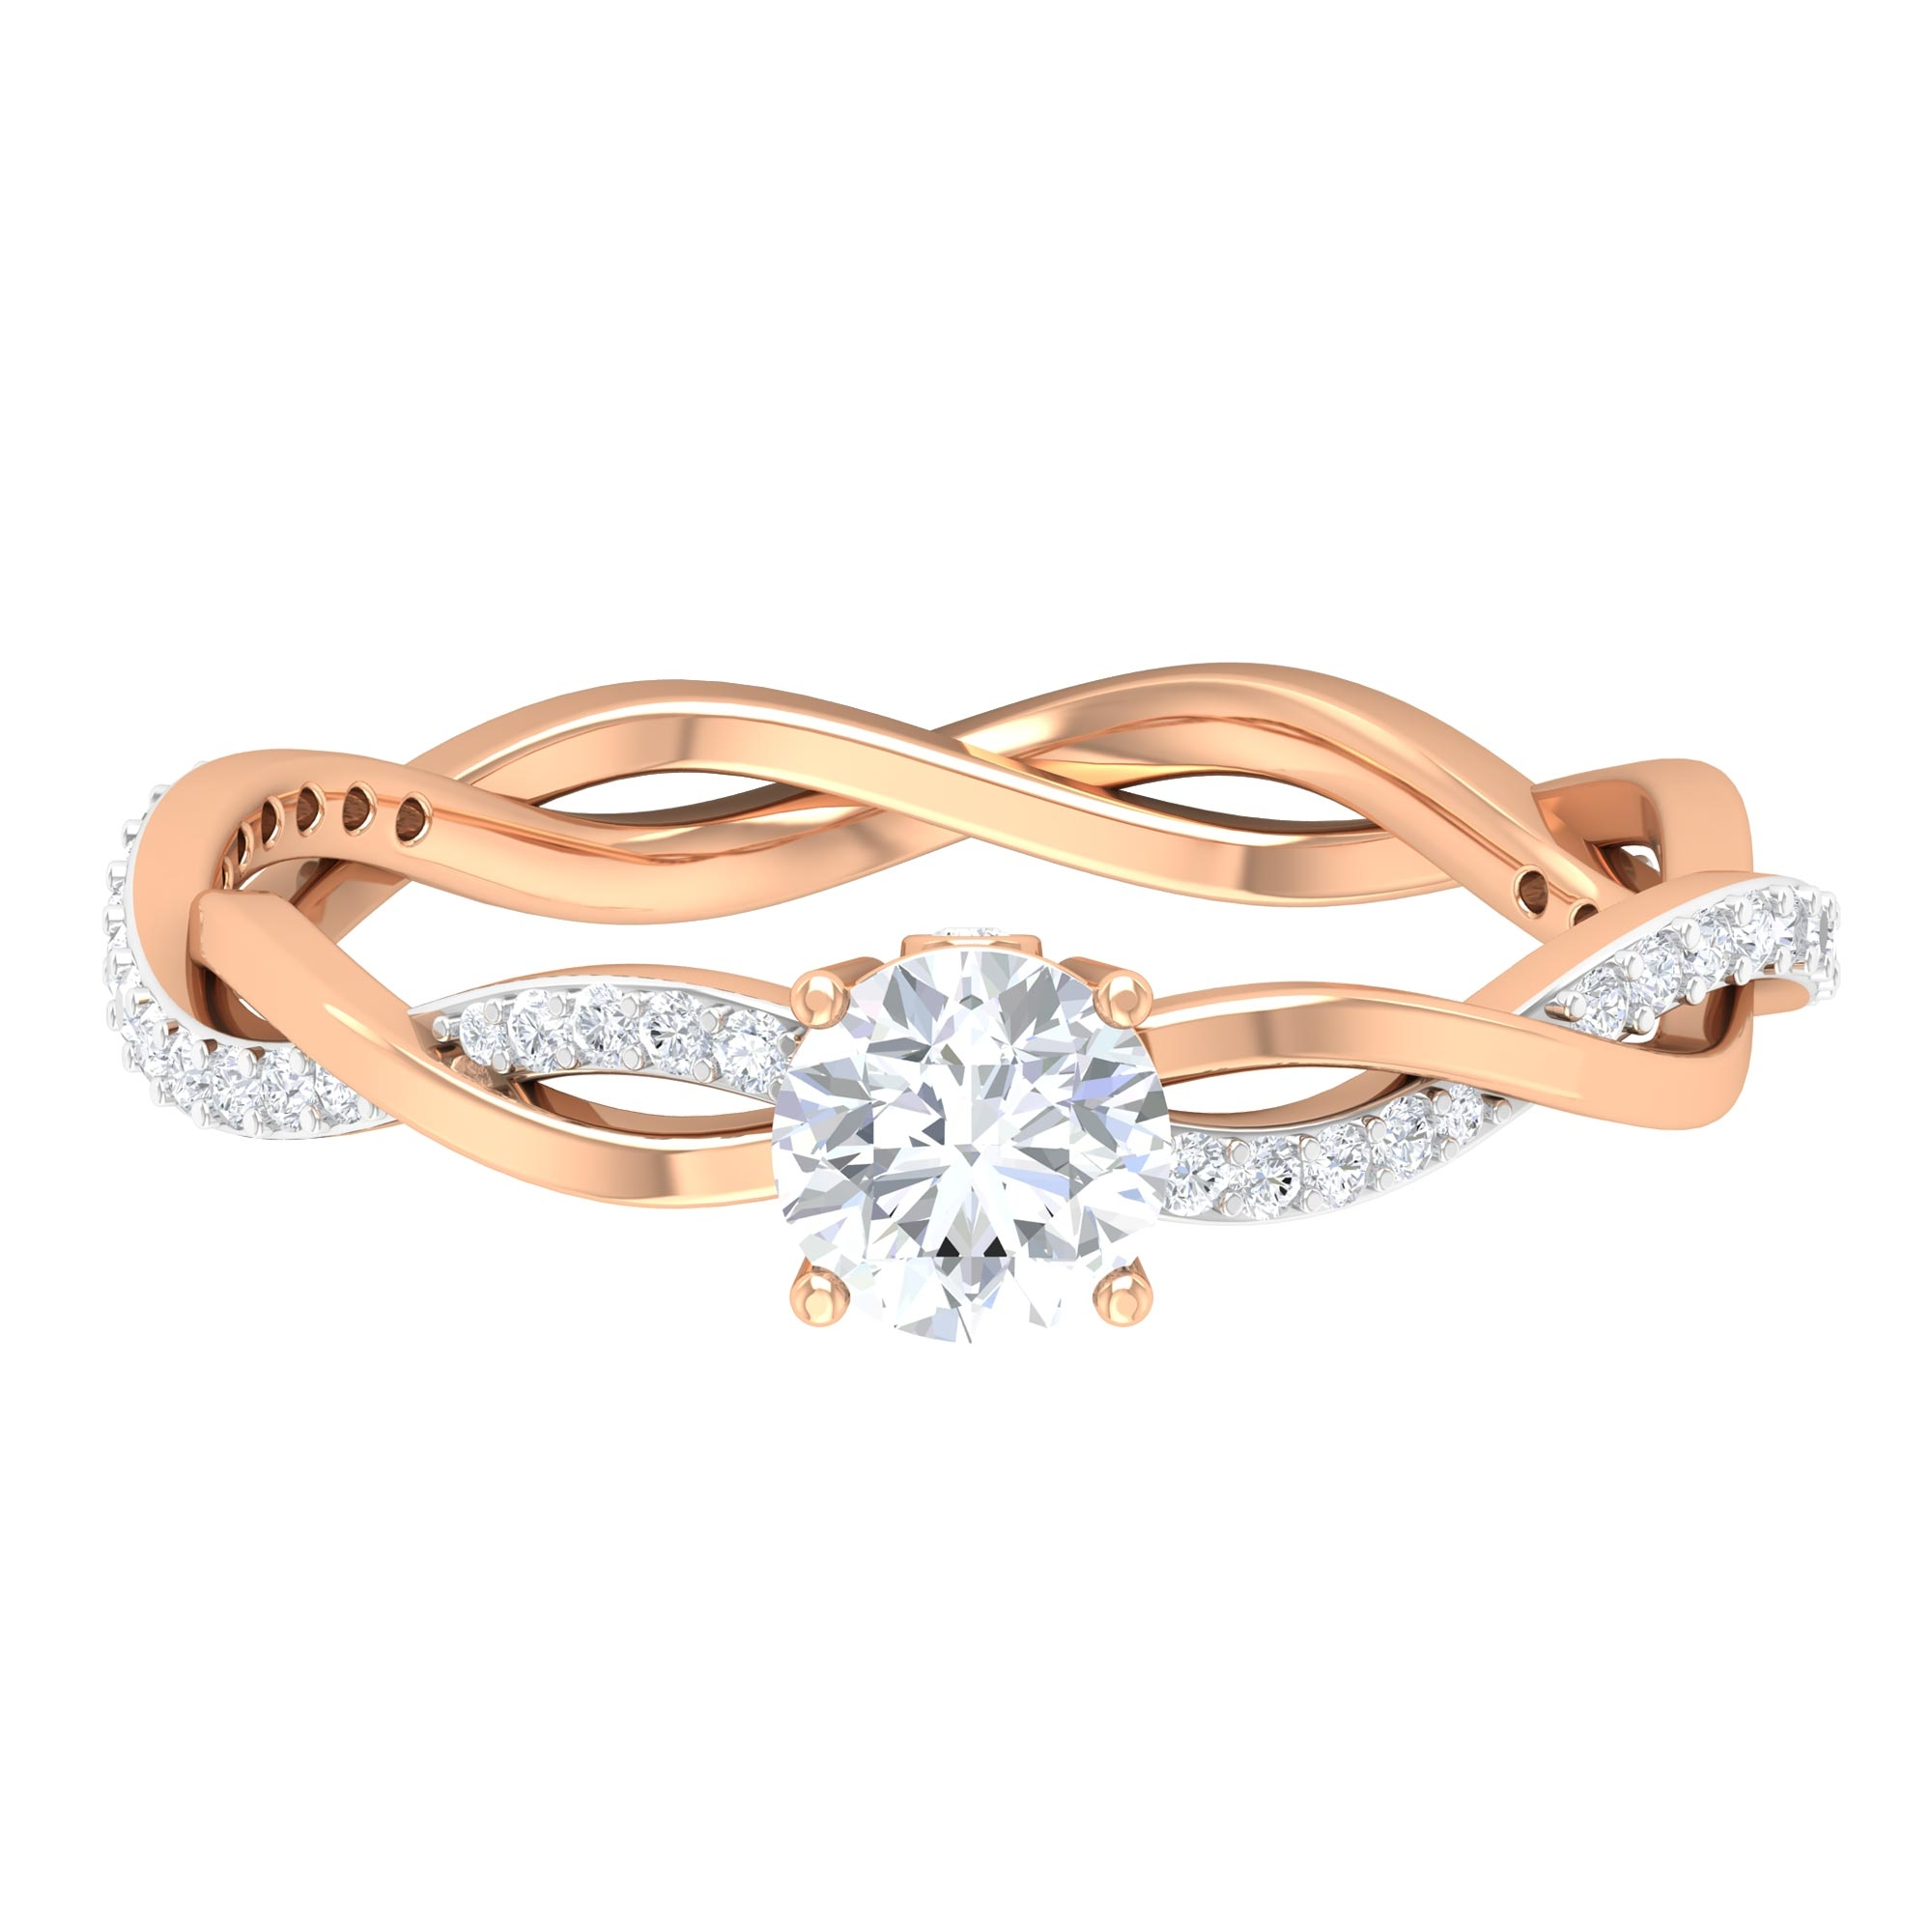 3/4 CT Round Cut Diamond Braided Solitaire Ring in Prong Set with Surprise Diamond